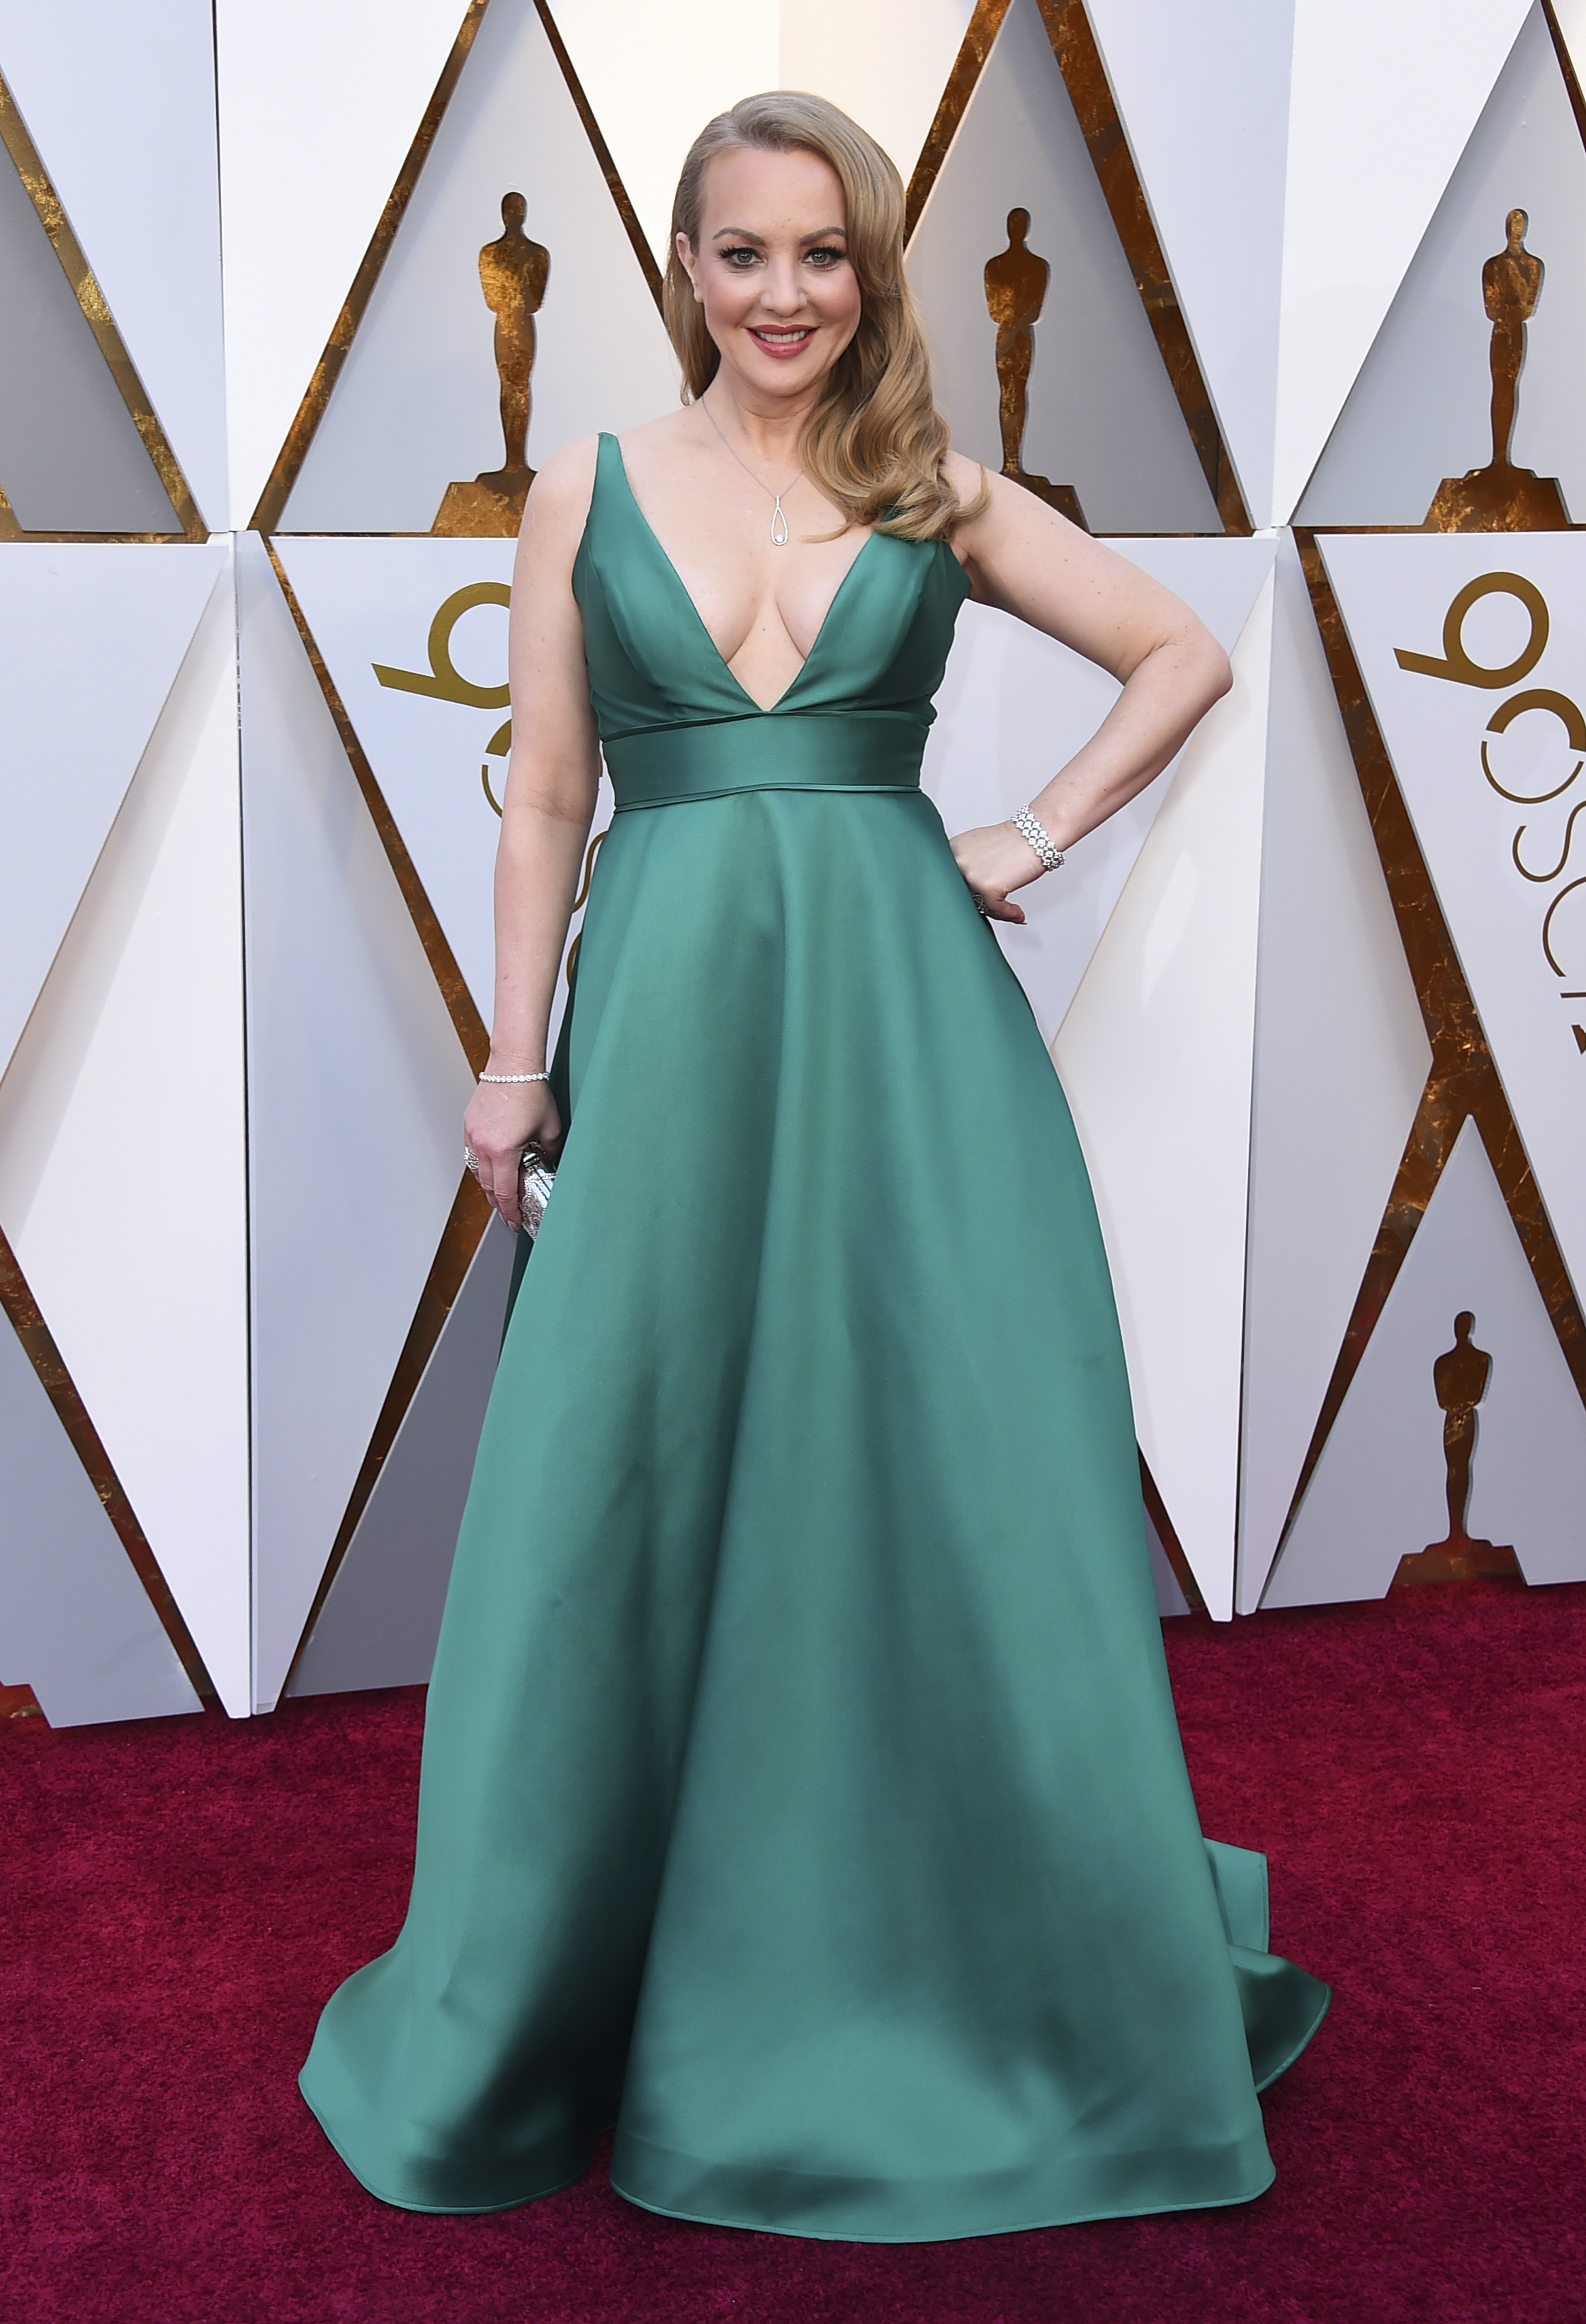 <div class='meta'><div class='origin-logo' data-origin='none'></div><span class='caption-text' data-credit='Jordan Strauss/Invision/AP'>Wendi McLendon-Covey arrives at the Oscars on Sunday, March 4, 2018, at the Dolby Theatre in Los Angeles.</span></div>